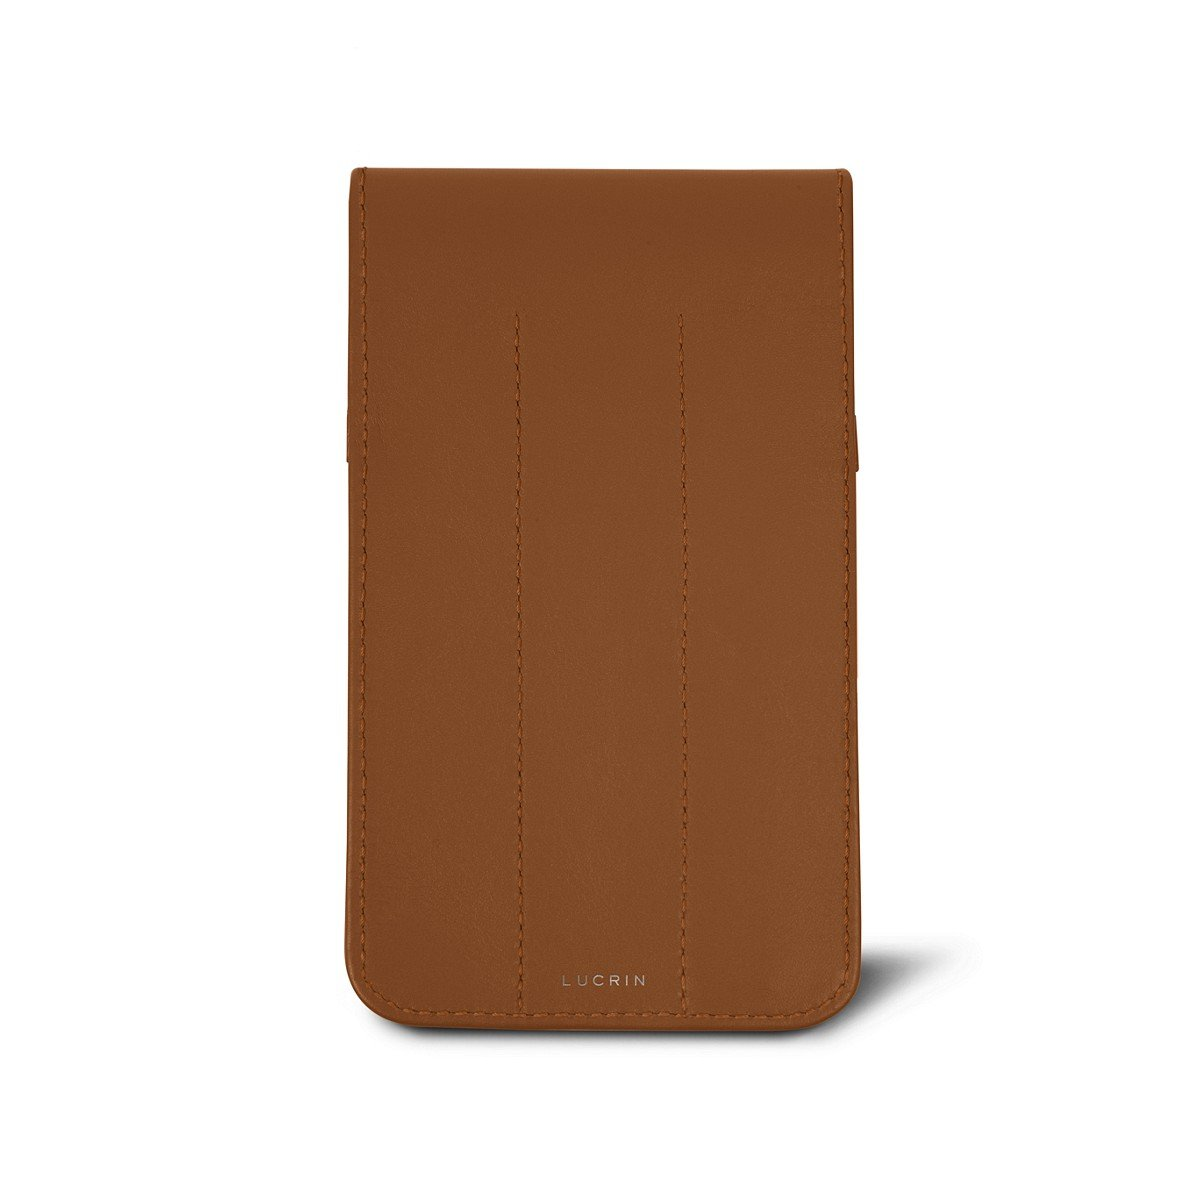 Case for 3 pens Smooth Leather Lucrin Tan